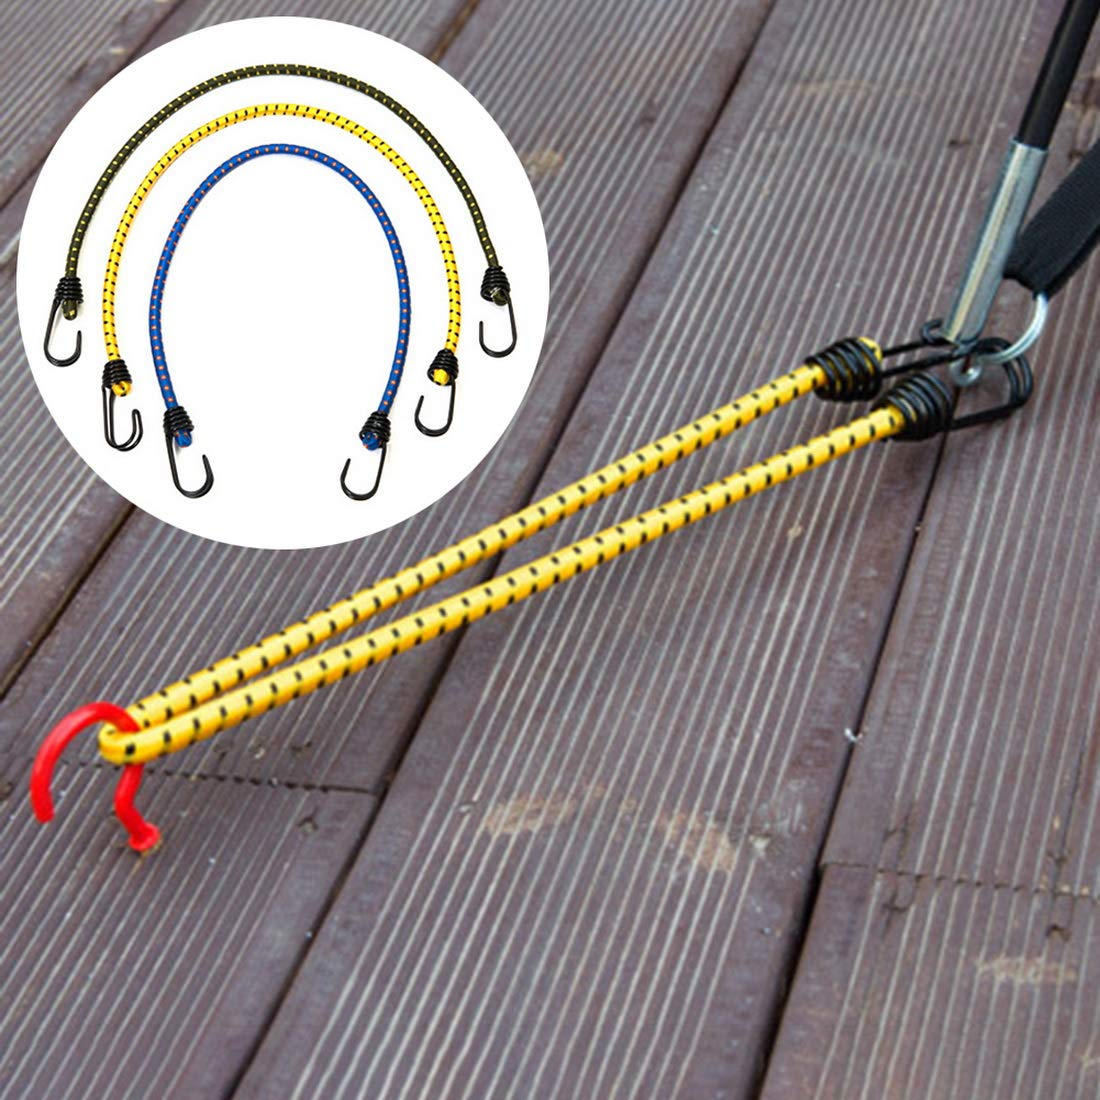 Bungee Cords With Hooks Assortment 3 Pcs Length 23.62 Inch Dia 0.31 Inch Random Color For Cargo Camping Rvs Trunks Luggage Racks - Elastic Shock Cord Tarp Tie Downs by Mega Shop (Image #7)